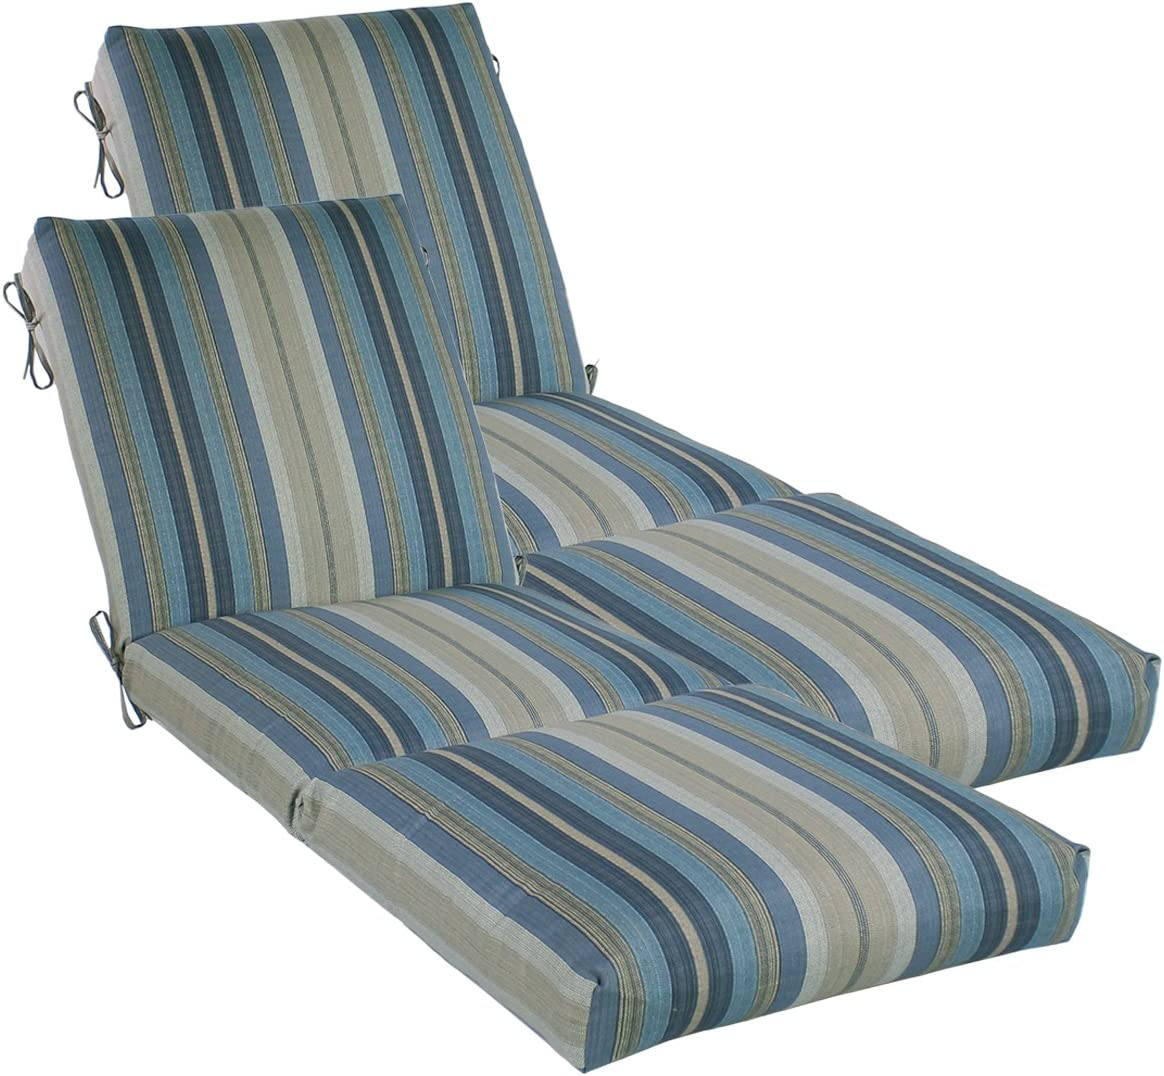 Comfort Classics Inc. Set of 2 Outdoor Channeled Chaise Cushion 23W x 72L x 4.5H Hinge at 26 in Polyester Fabric Stripe Blue